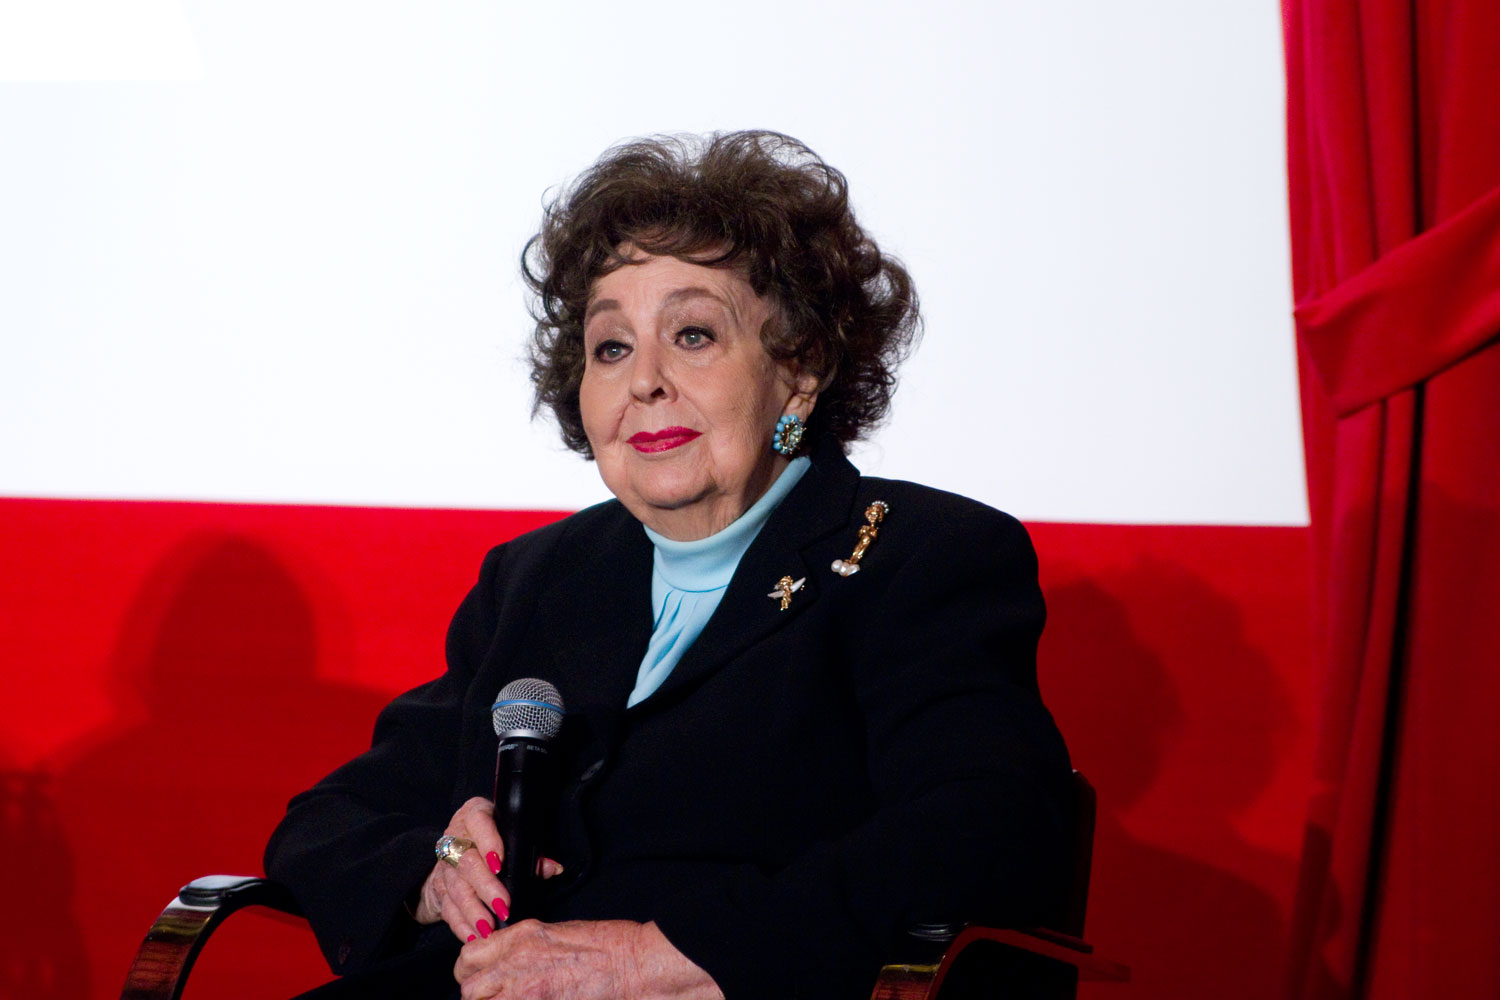 Jane Withers at the TCM Film Festival